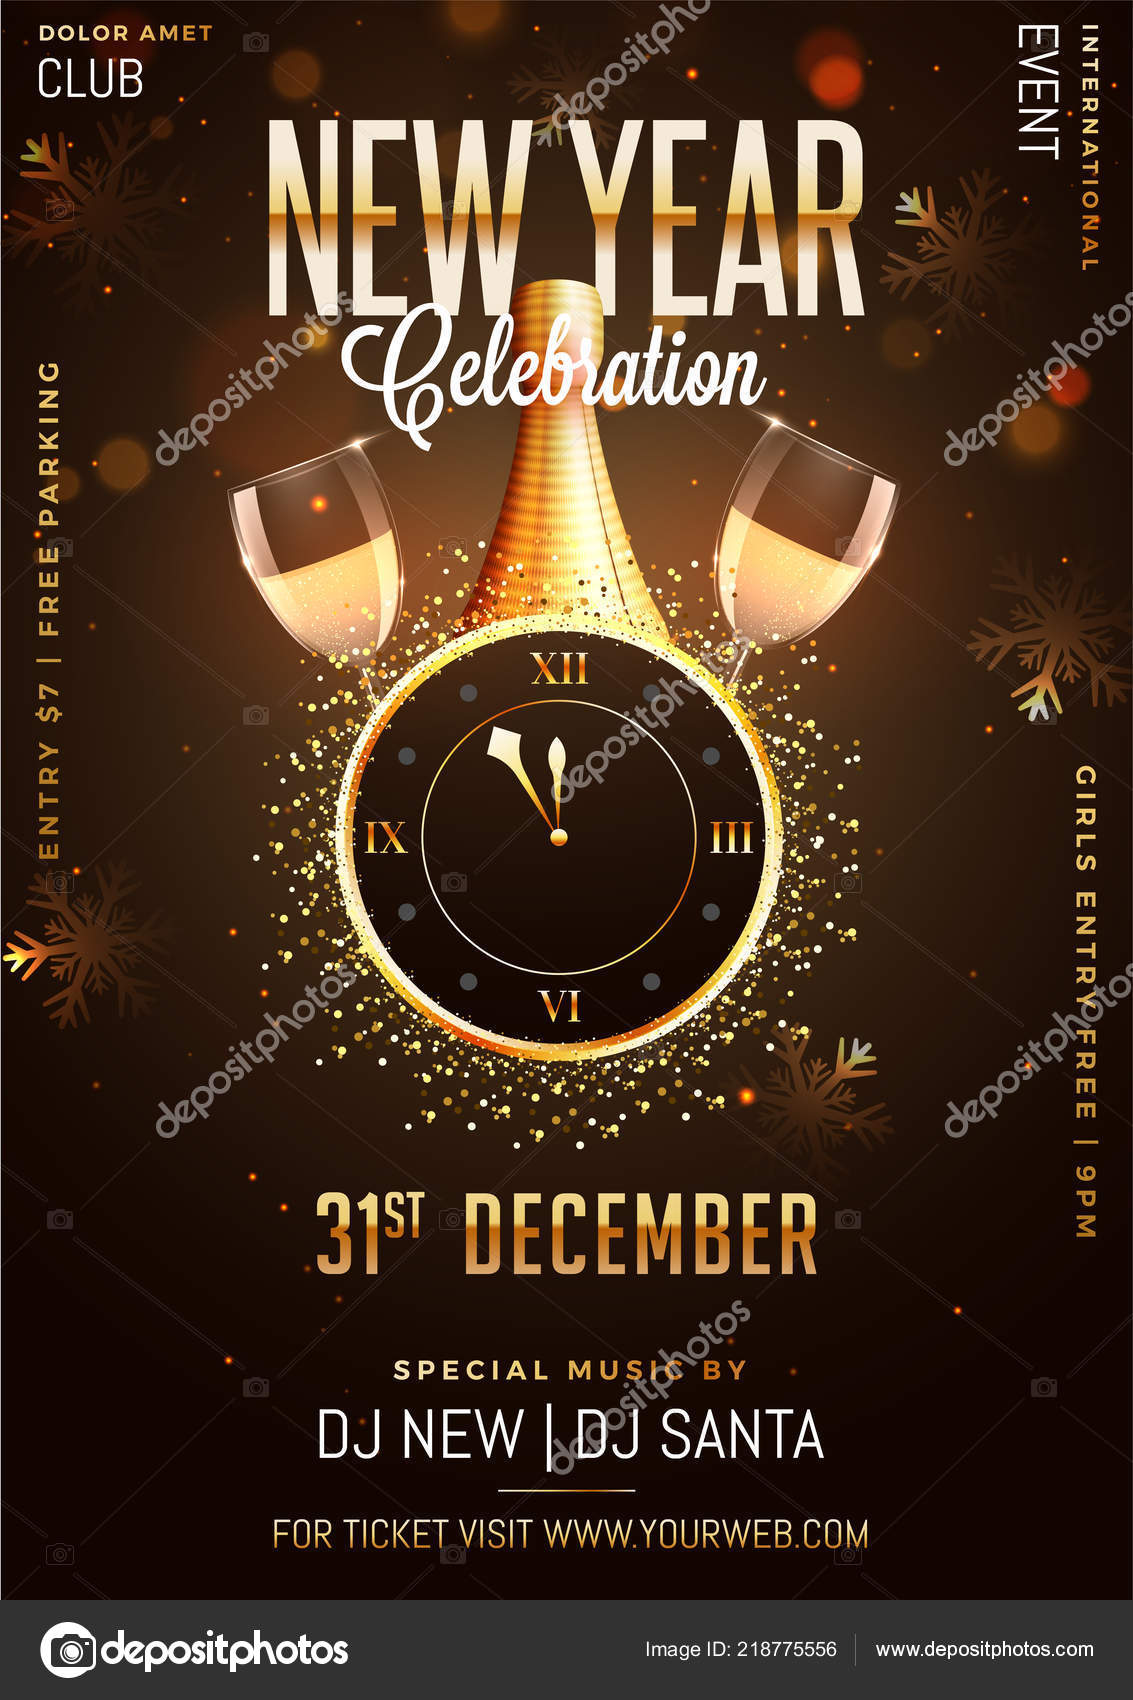 new year celebration template design wall clock champagne bottle glass stock vector